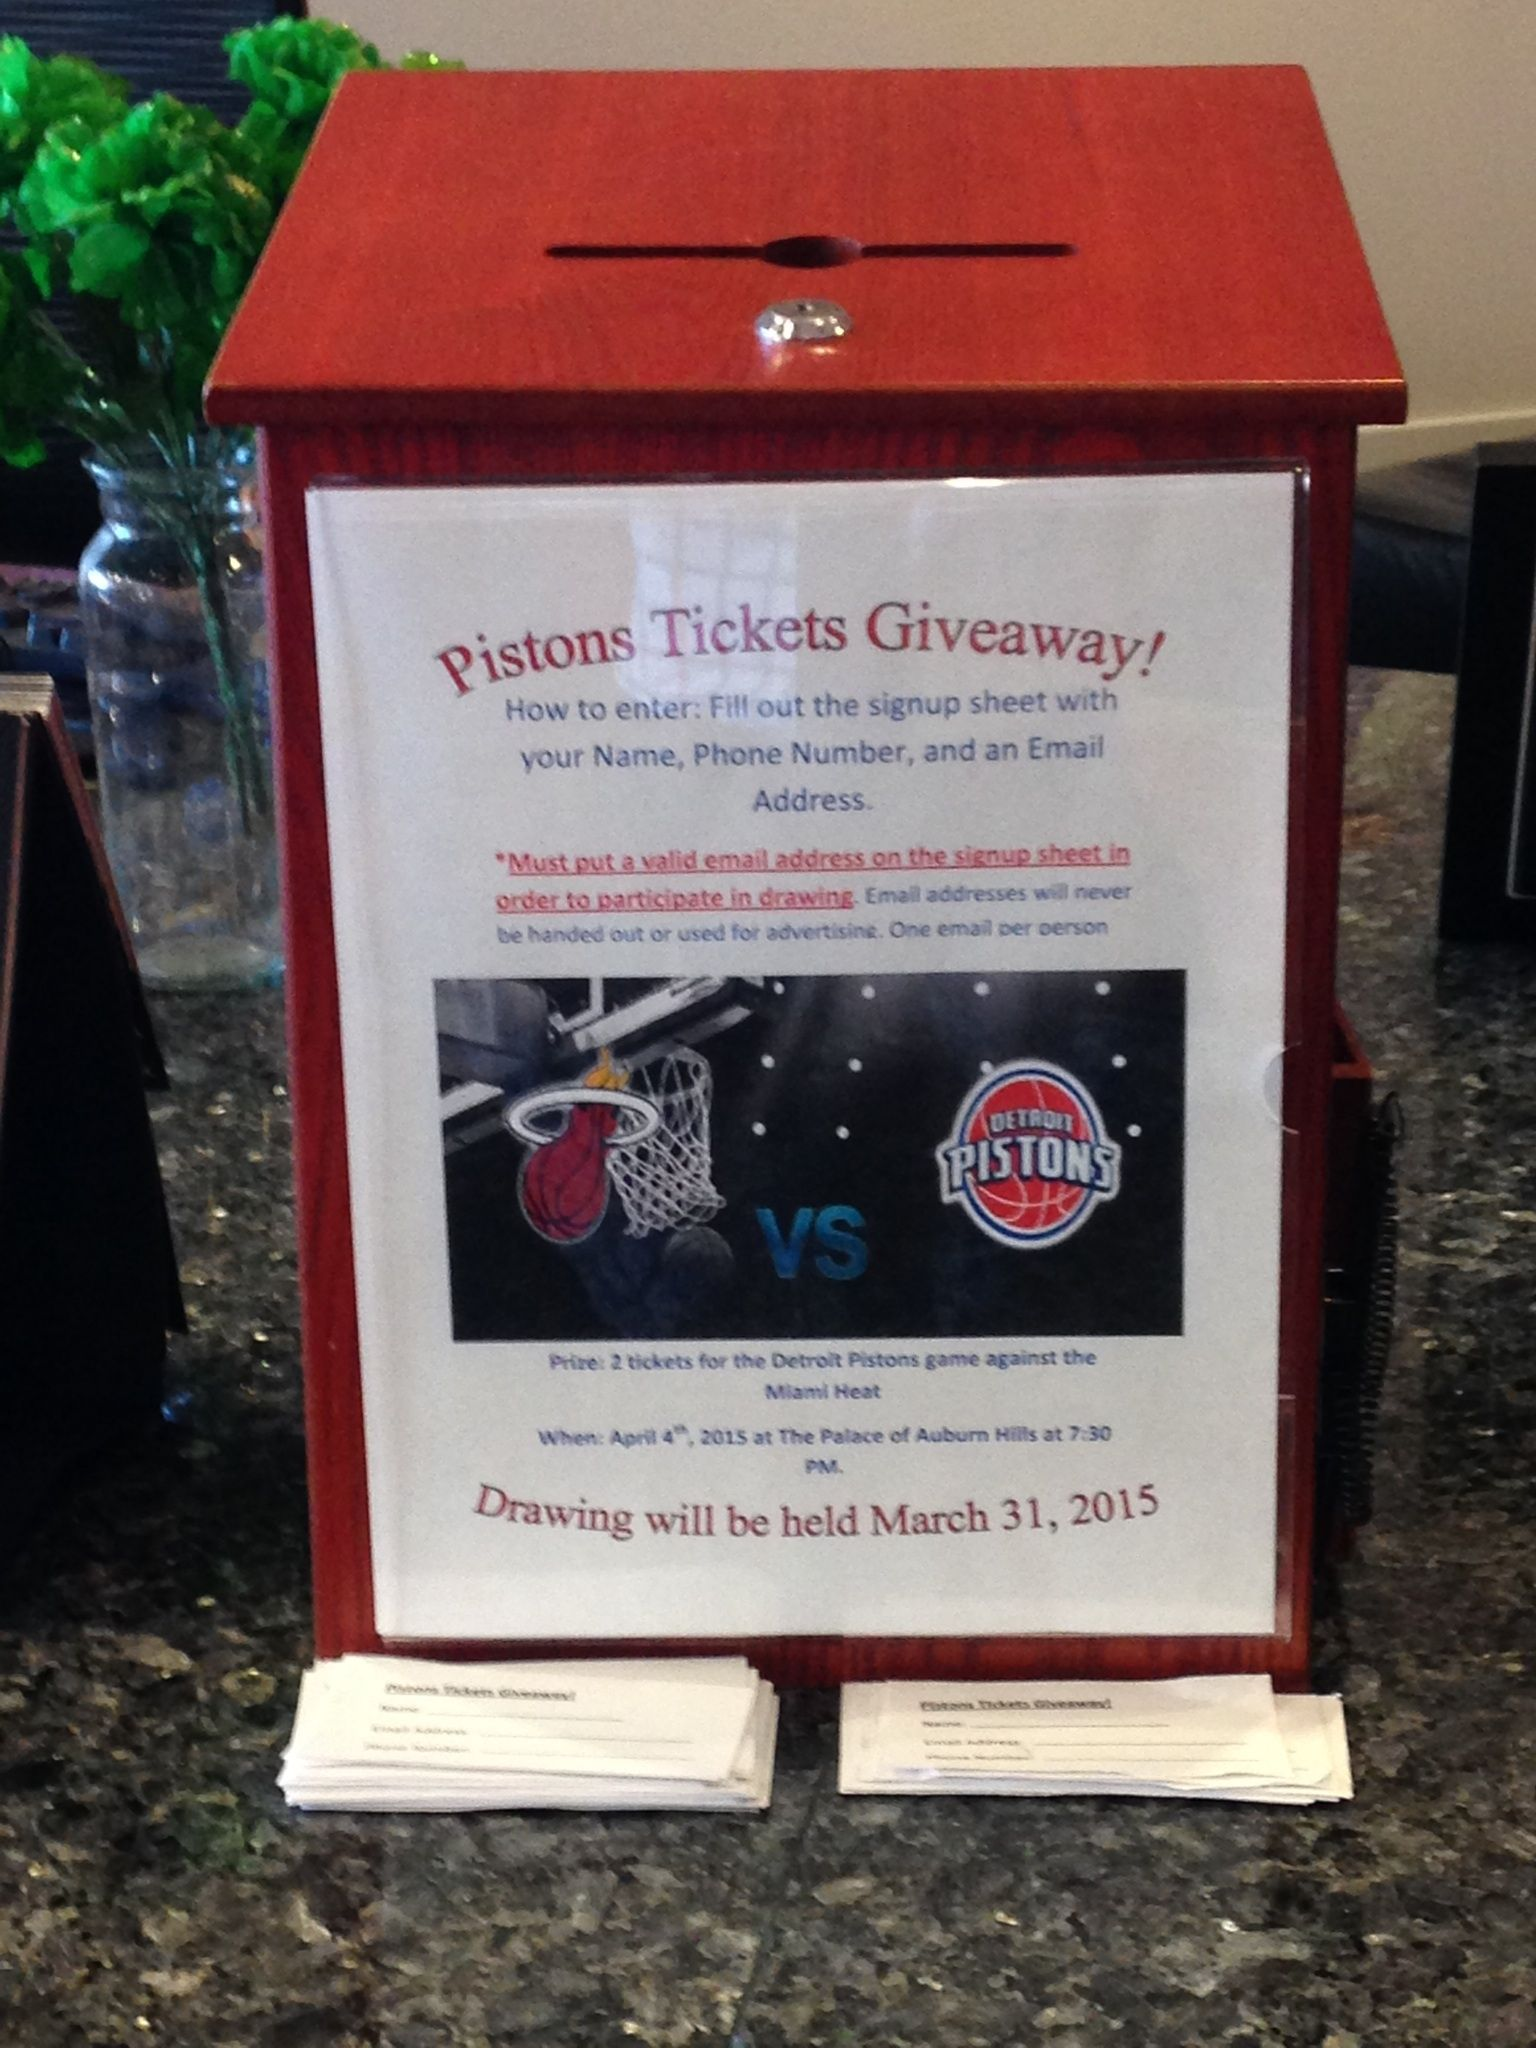 Don't forget to stop by and visit the lounge area for your chance to win 2 Detroit Piston's tickets for the April 4th game against the Miami Heat! Drawing will be held on March 31st!